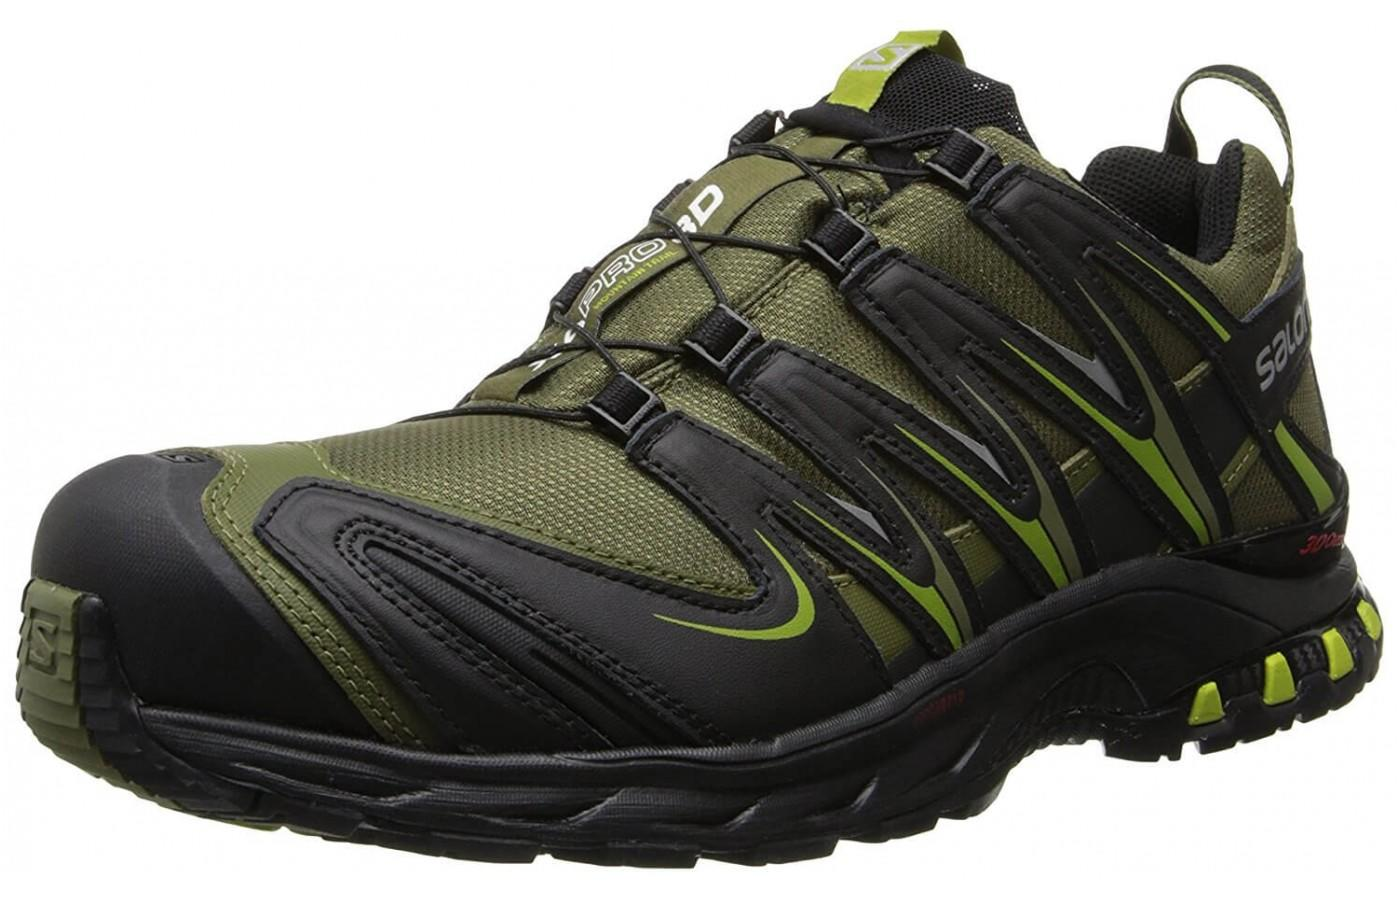 the Salomon XA Pro 3D CS WP is a durable trail runner that can be worn in a number of harsh conditions